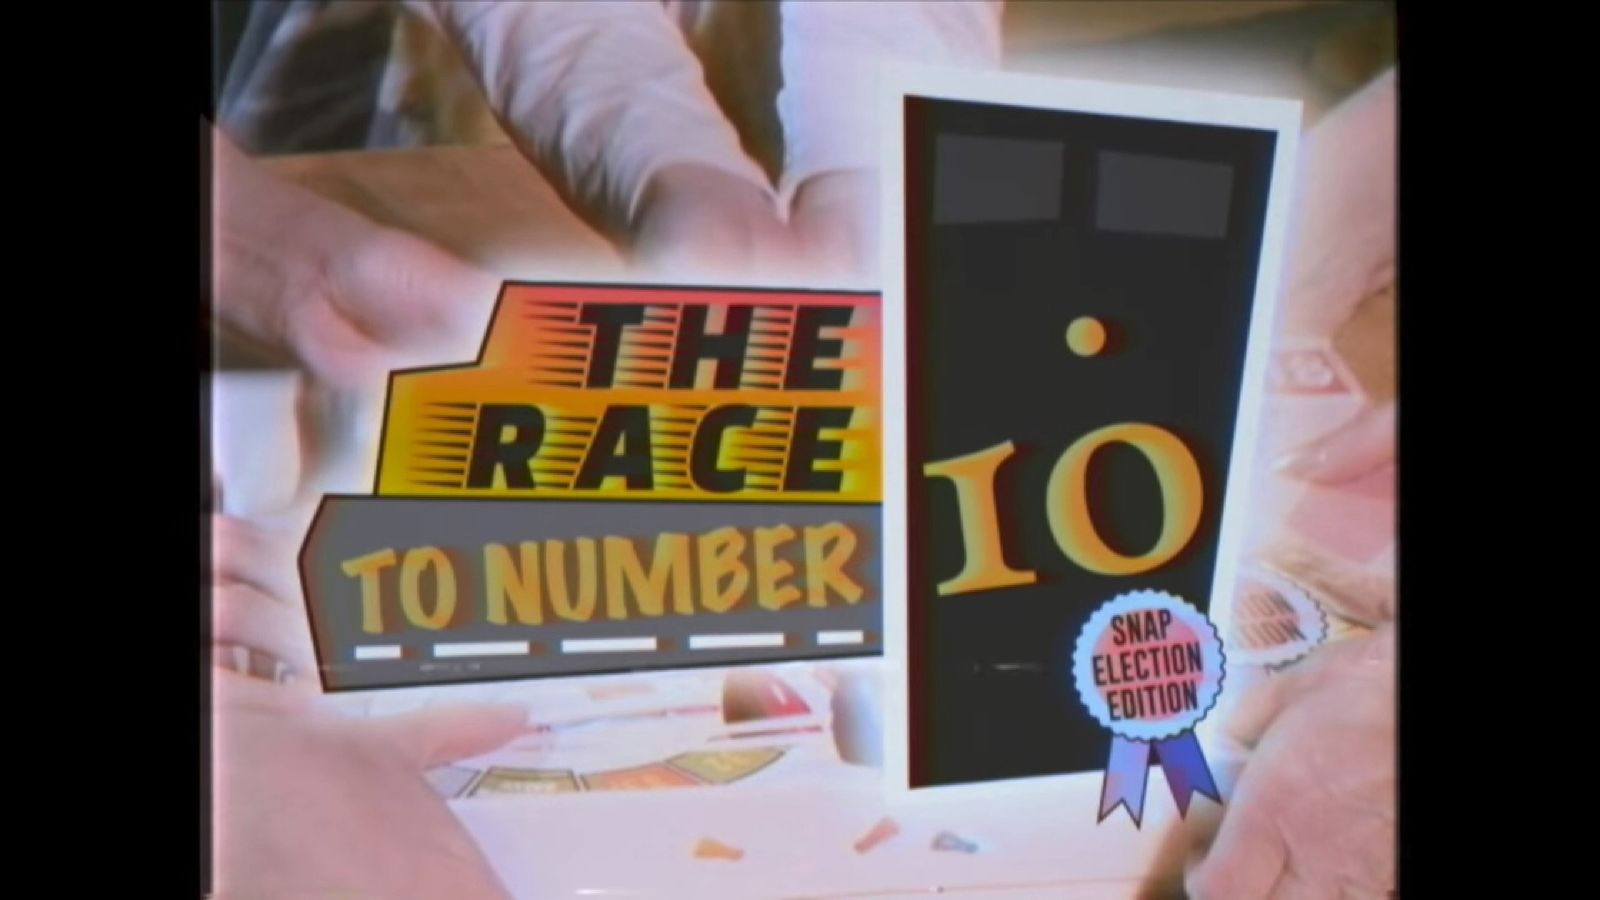 The Green Party have released a retro-themed video for their election broadcast